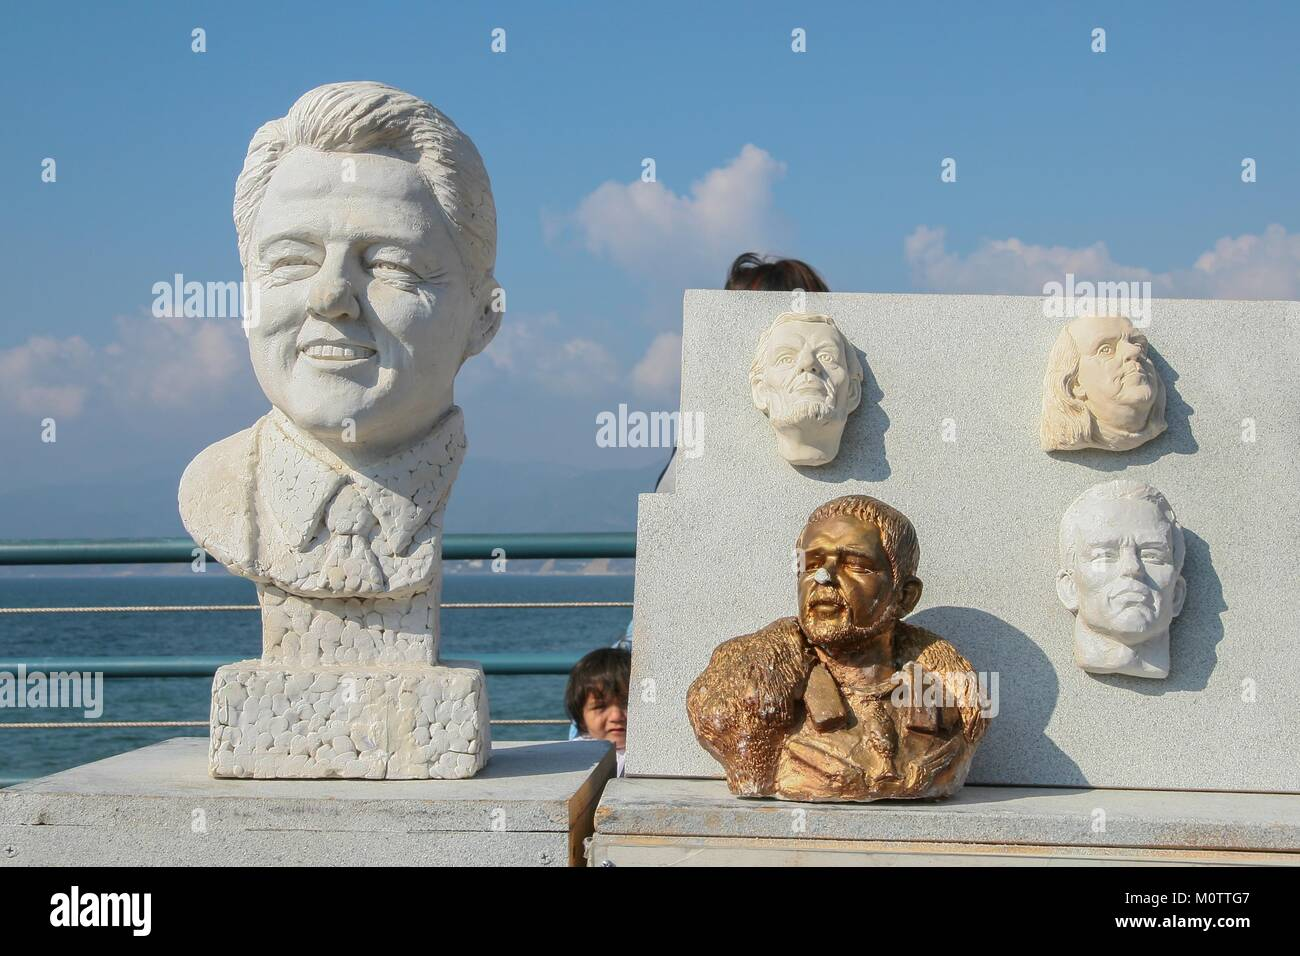 Faces in clay of some personages from the world of entertainment, politics and culture of the United States, molded - Stock Image